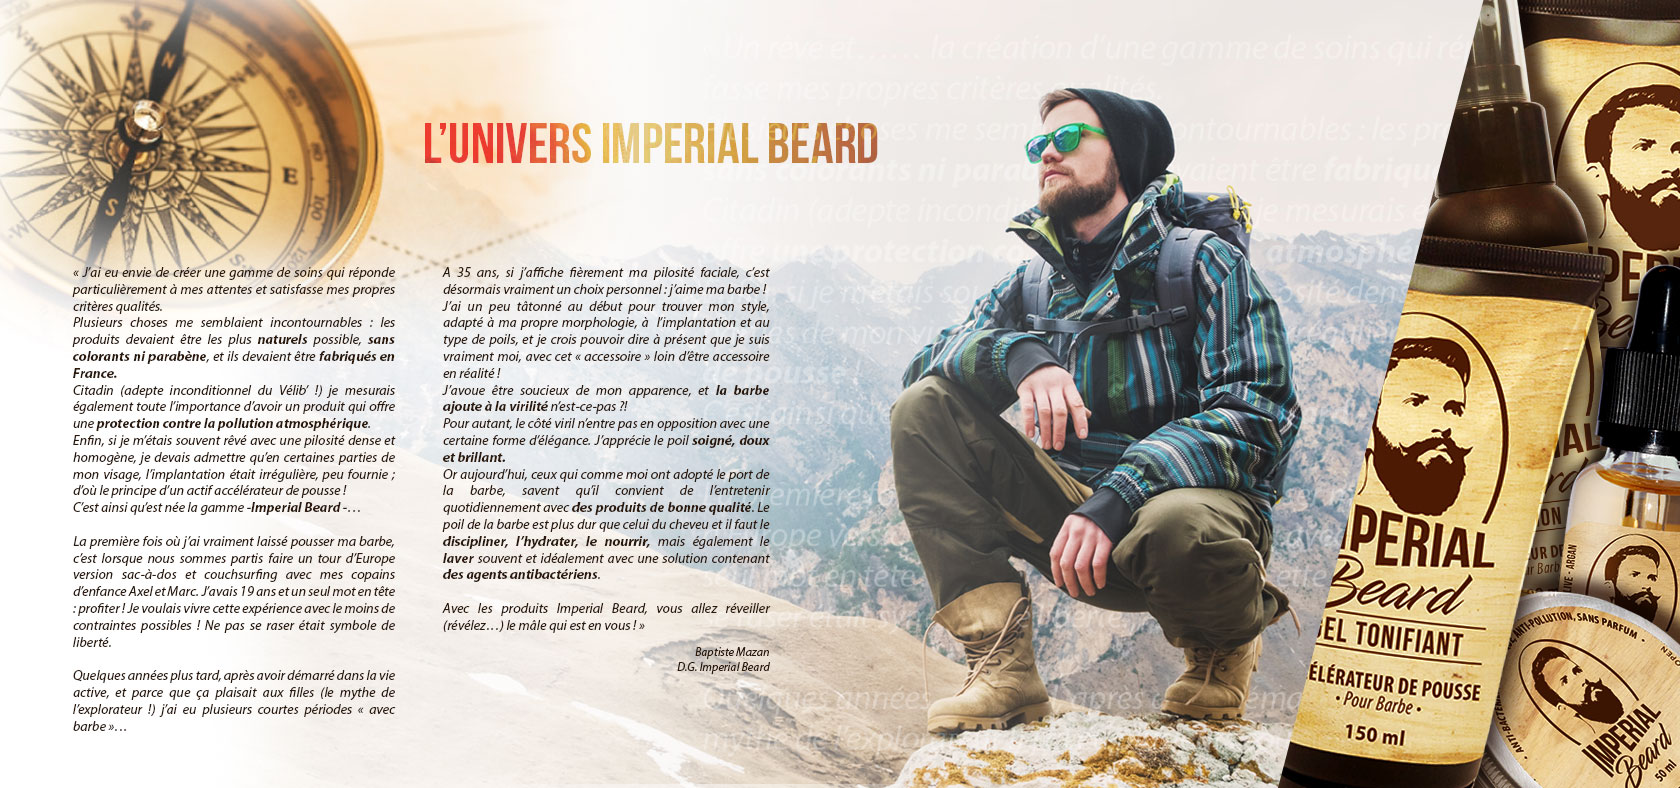 L'Univers Imperial Beard